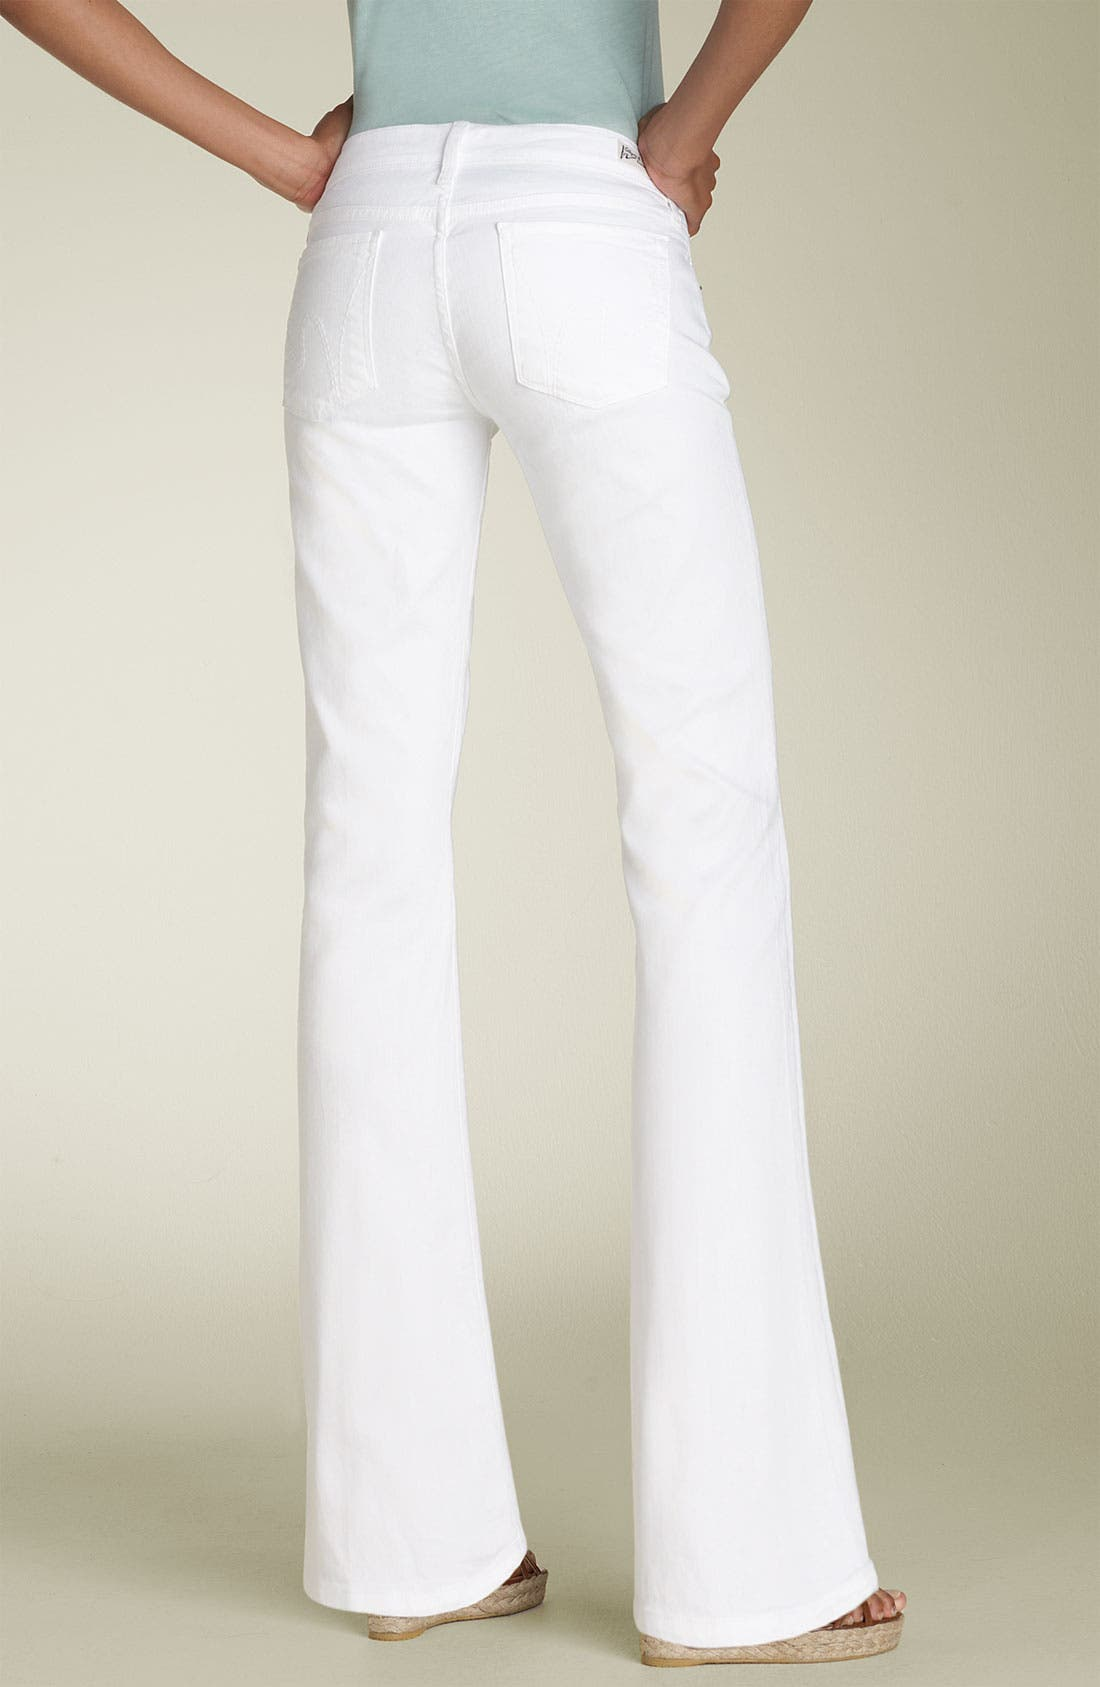 Alternate Image 2  - Citizens of Humanity 'Dita' Bootcut Stretch Jeans (Santorini White) (Petite)